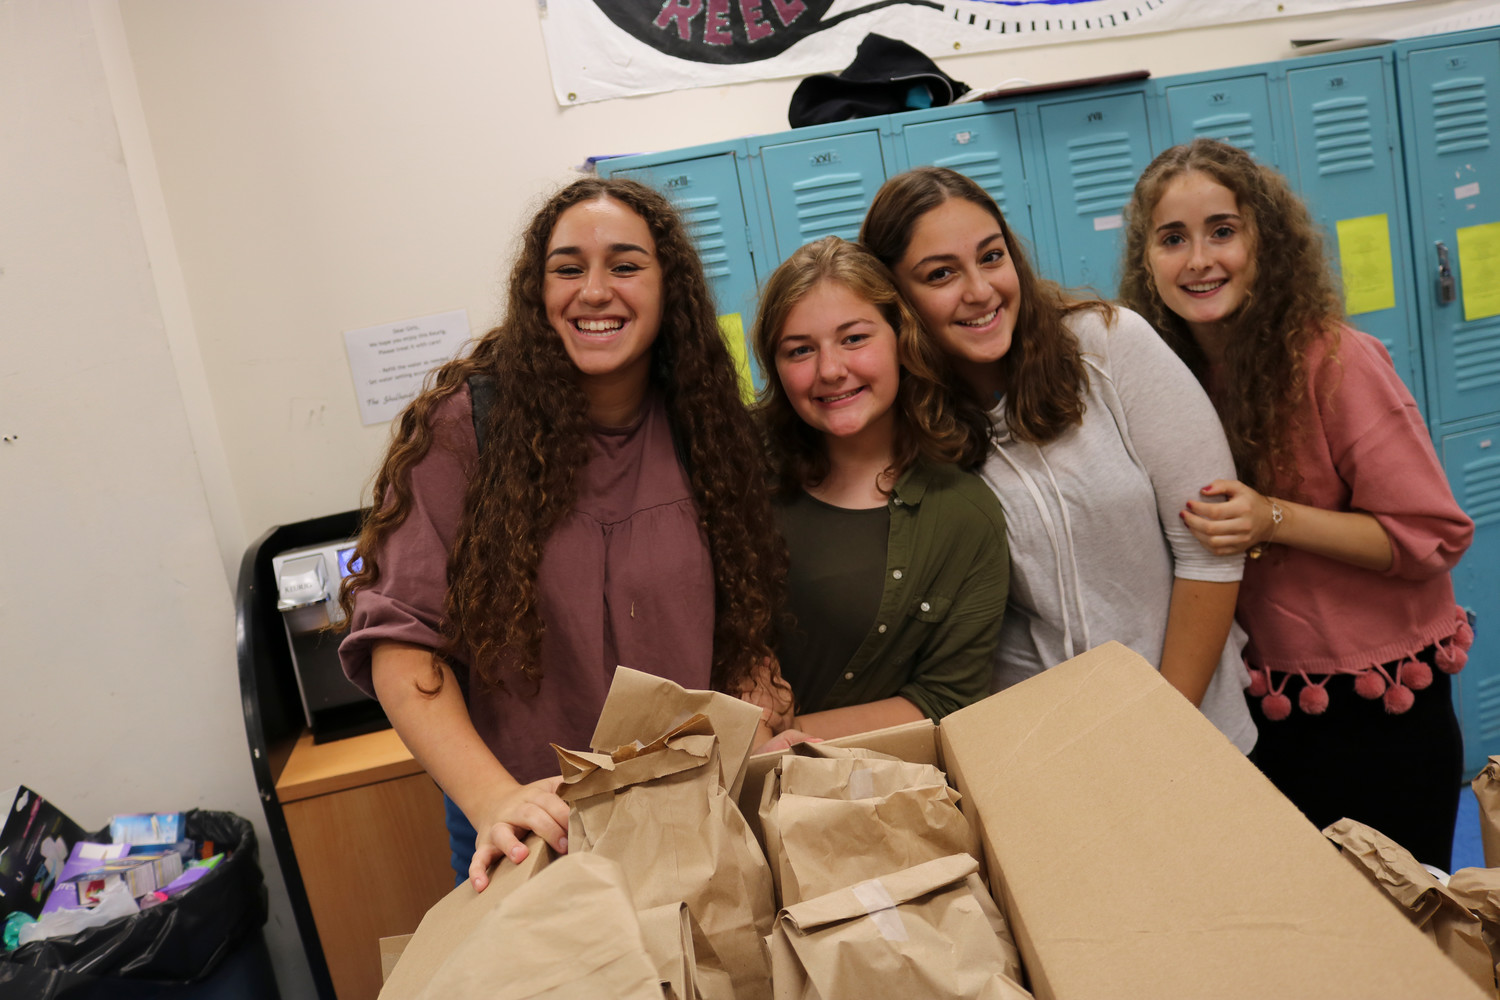 Midreshet Shalhevet High School students donated supplies to women's shelters. From left were Rachelli Klein of Lawrence, Hadassah Fertig of Woodmere, Shana Schapira of Brooklyn and Hannah Zerbib of Lawrence.